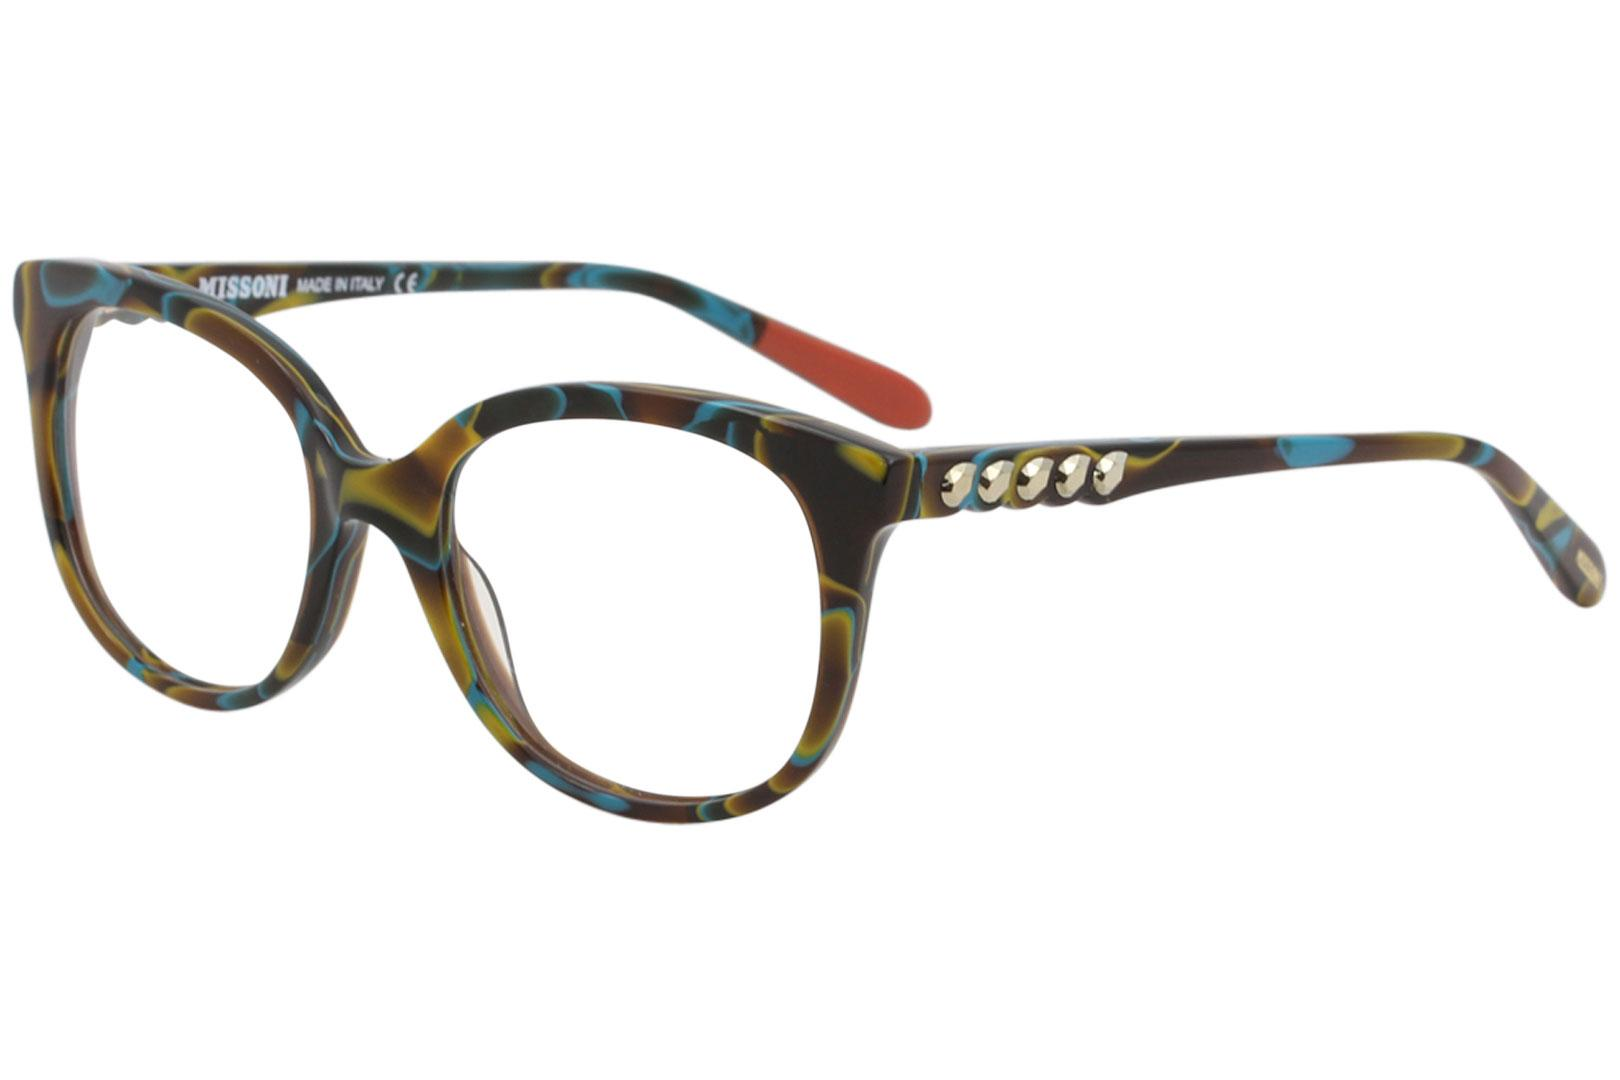 Image of Missoni Women's Eyeglasses MI313V MI/313/V Full Rim Optical Frame - Yellow W/Crystal Accents   04 -  Lens 53 Bridge 19 Temple 140mm